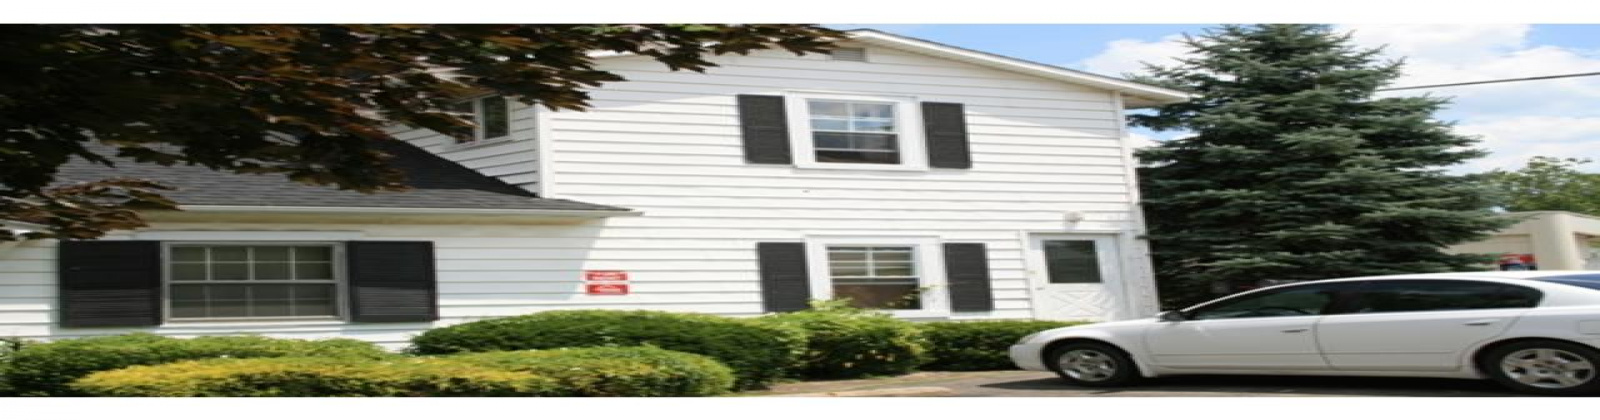 536 Richland Avenue APT A Athens, Ohio, 1 Bedroom Bedrooms, ,1 BathroomBathrooms,Apartment,For Rent,Richland,1099